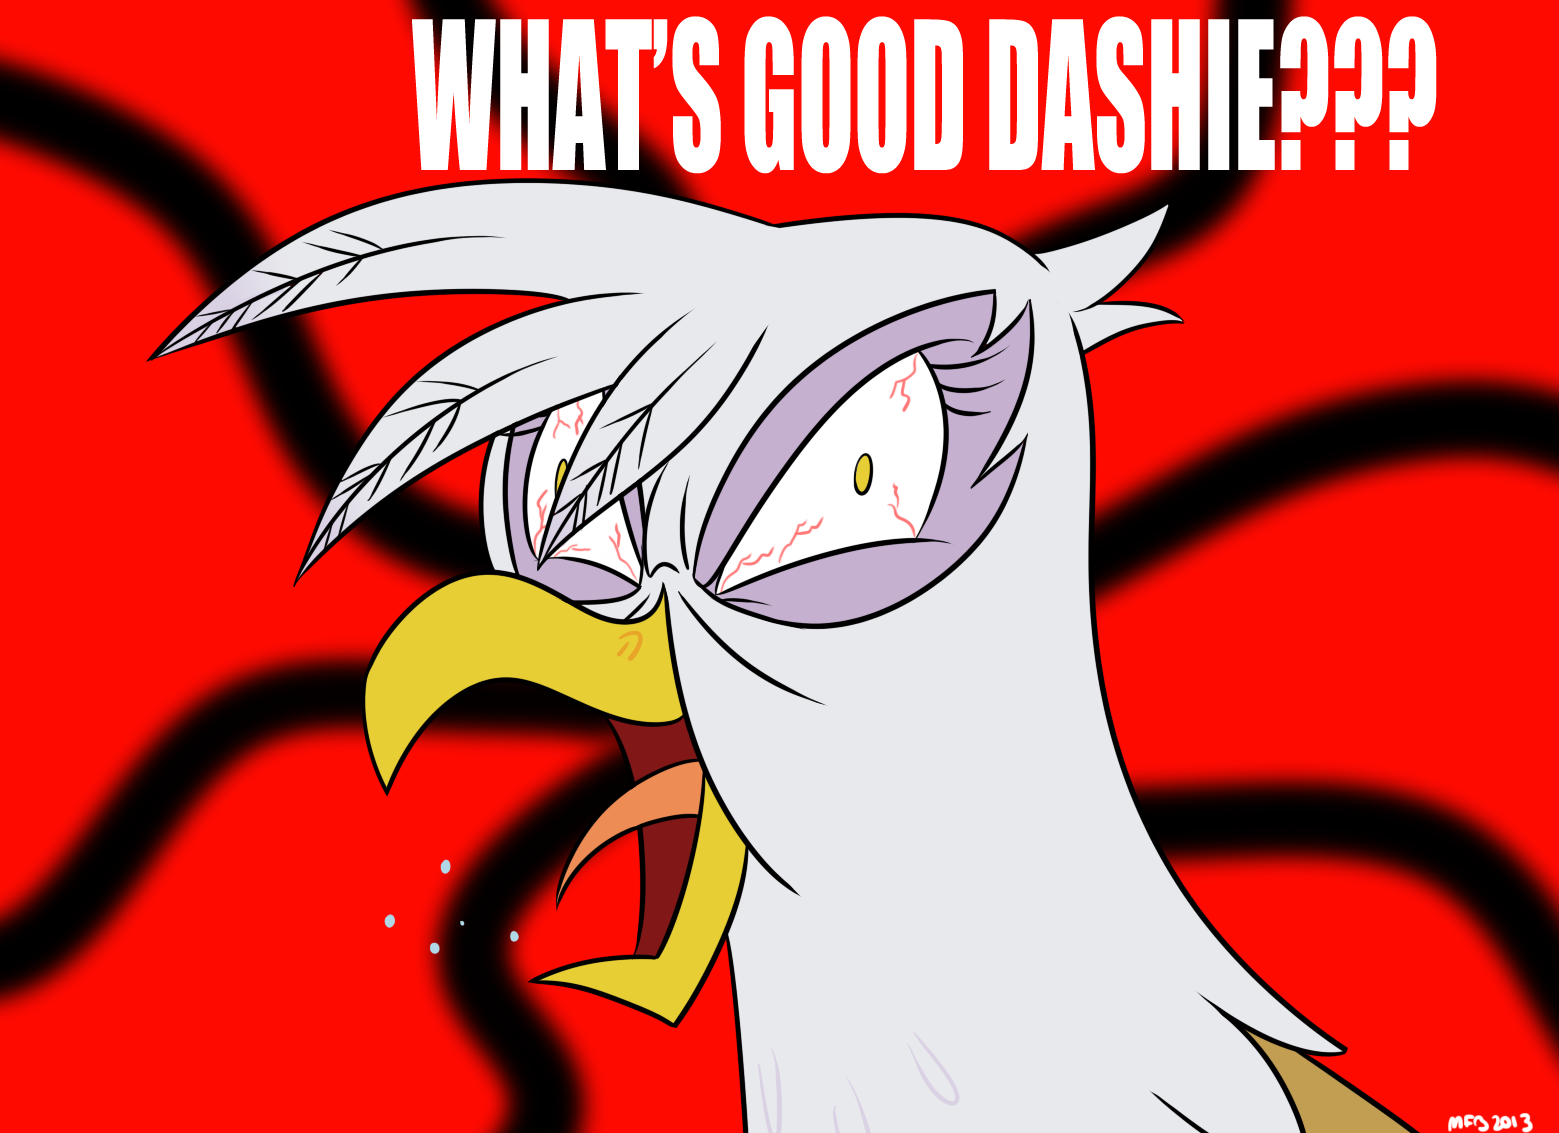 WHAT'S GOOD DASHIE???